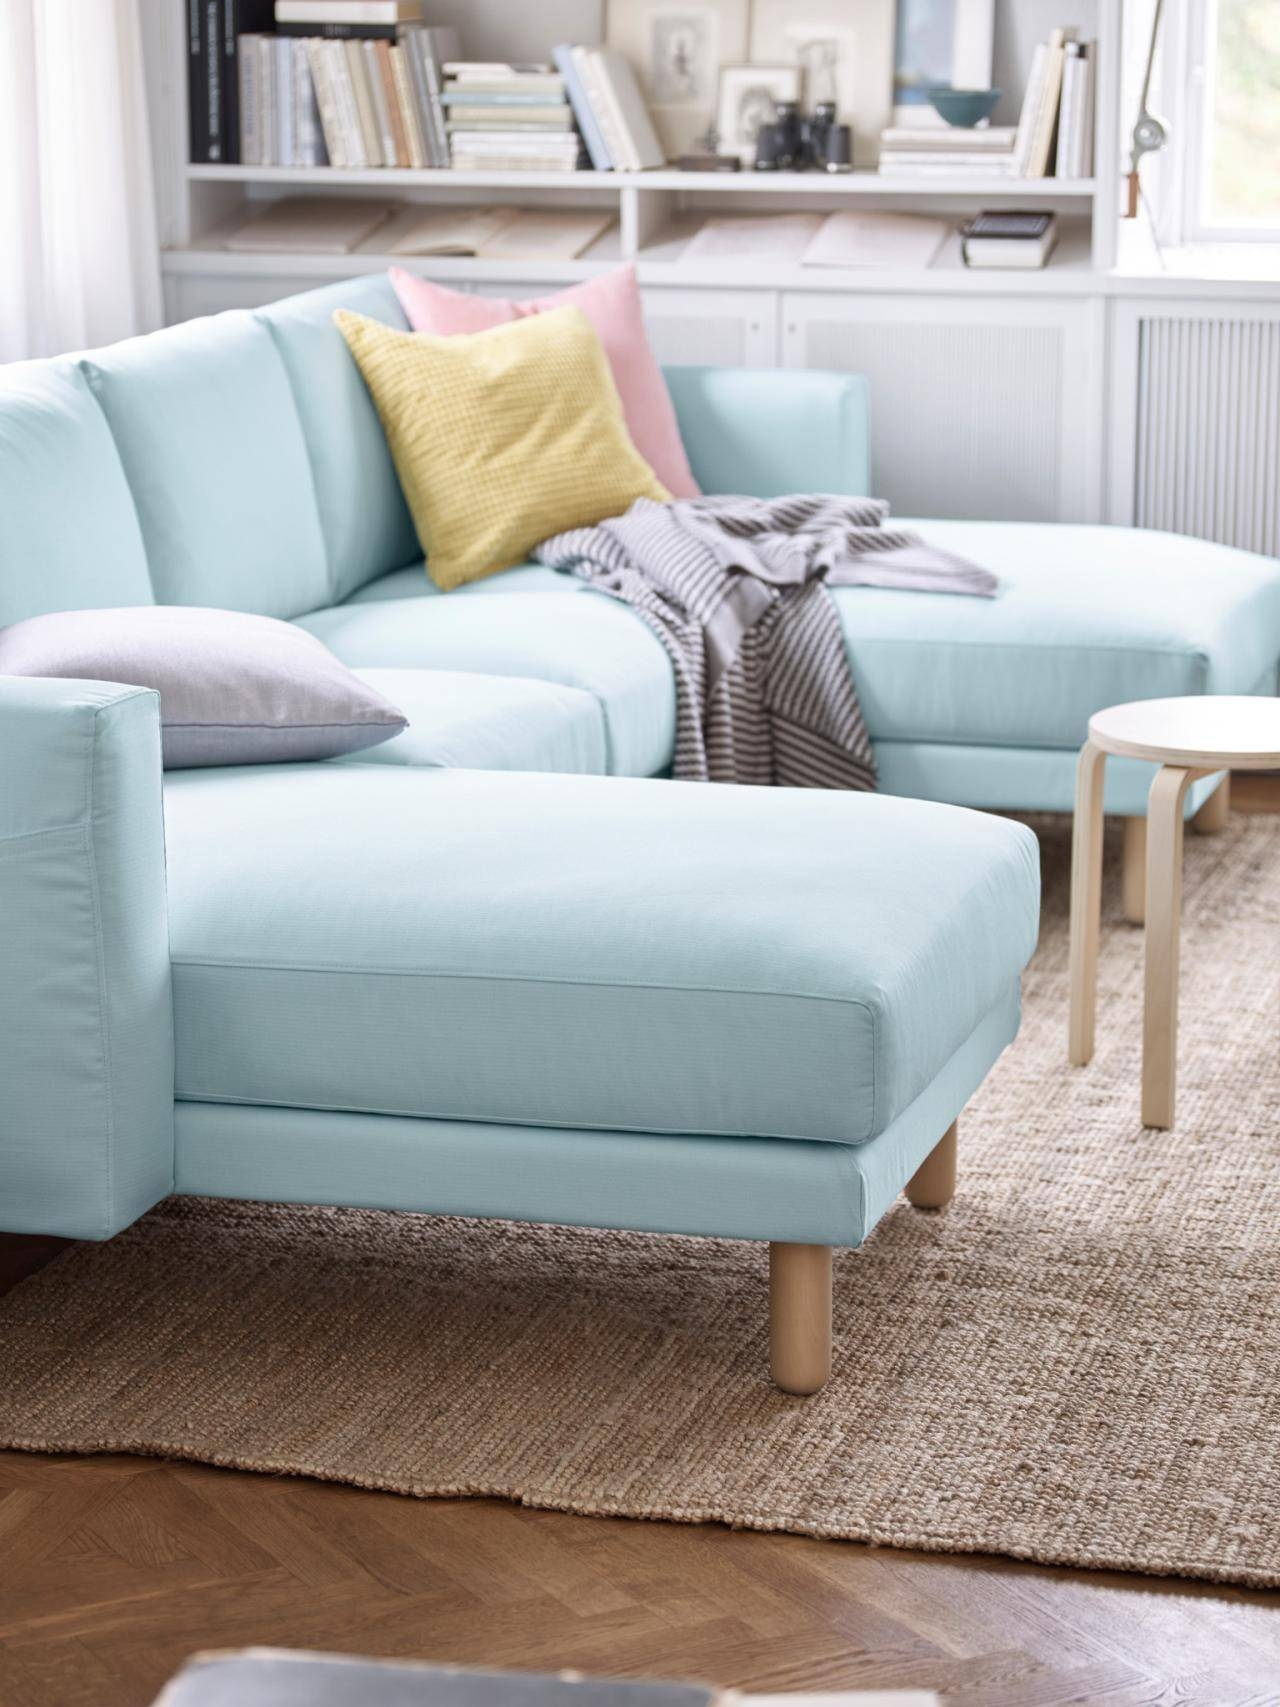 5 Apartment Sized Sofas That Are Lifesavers | Hgtv's Decorating inside Inexpensive Sectional Sofas for Small Spaces (Image 2 of 30)